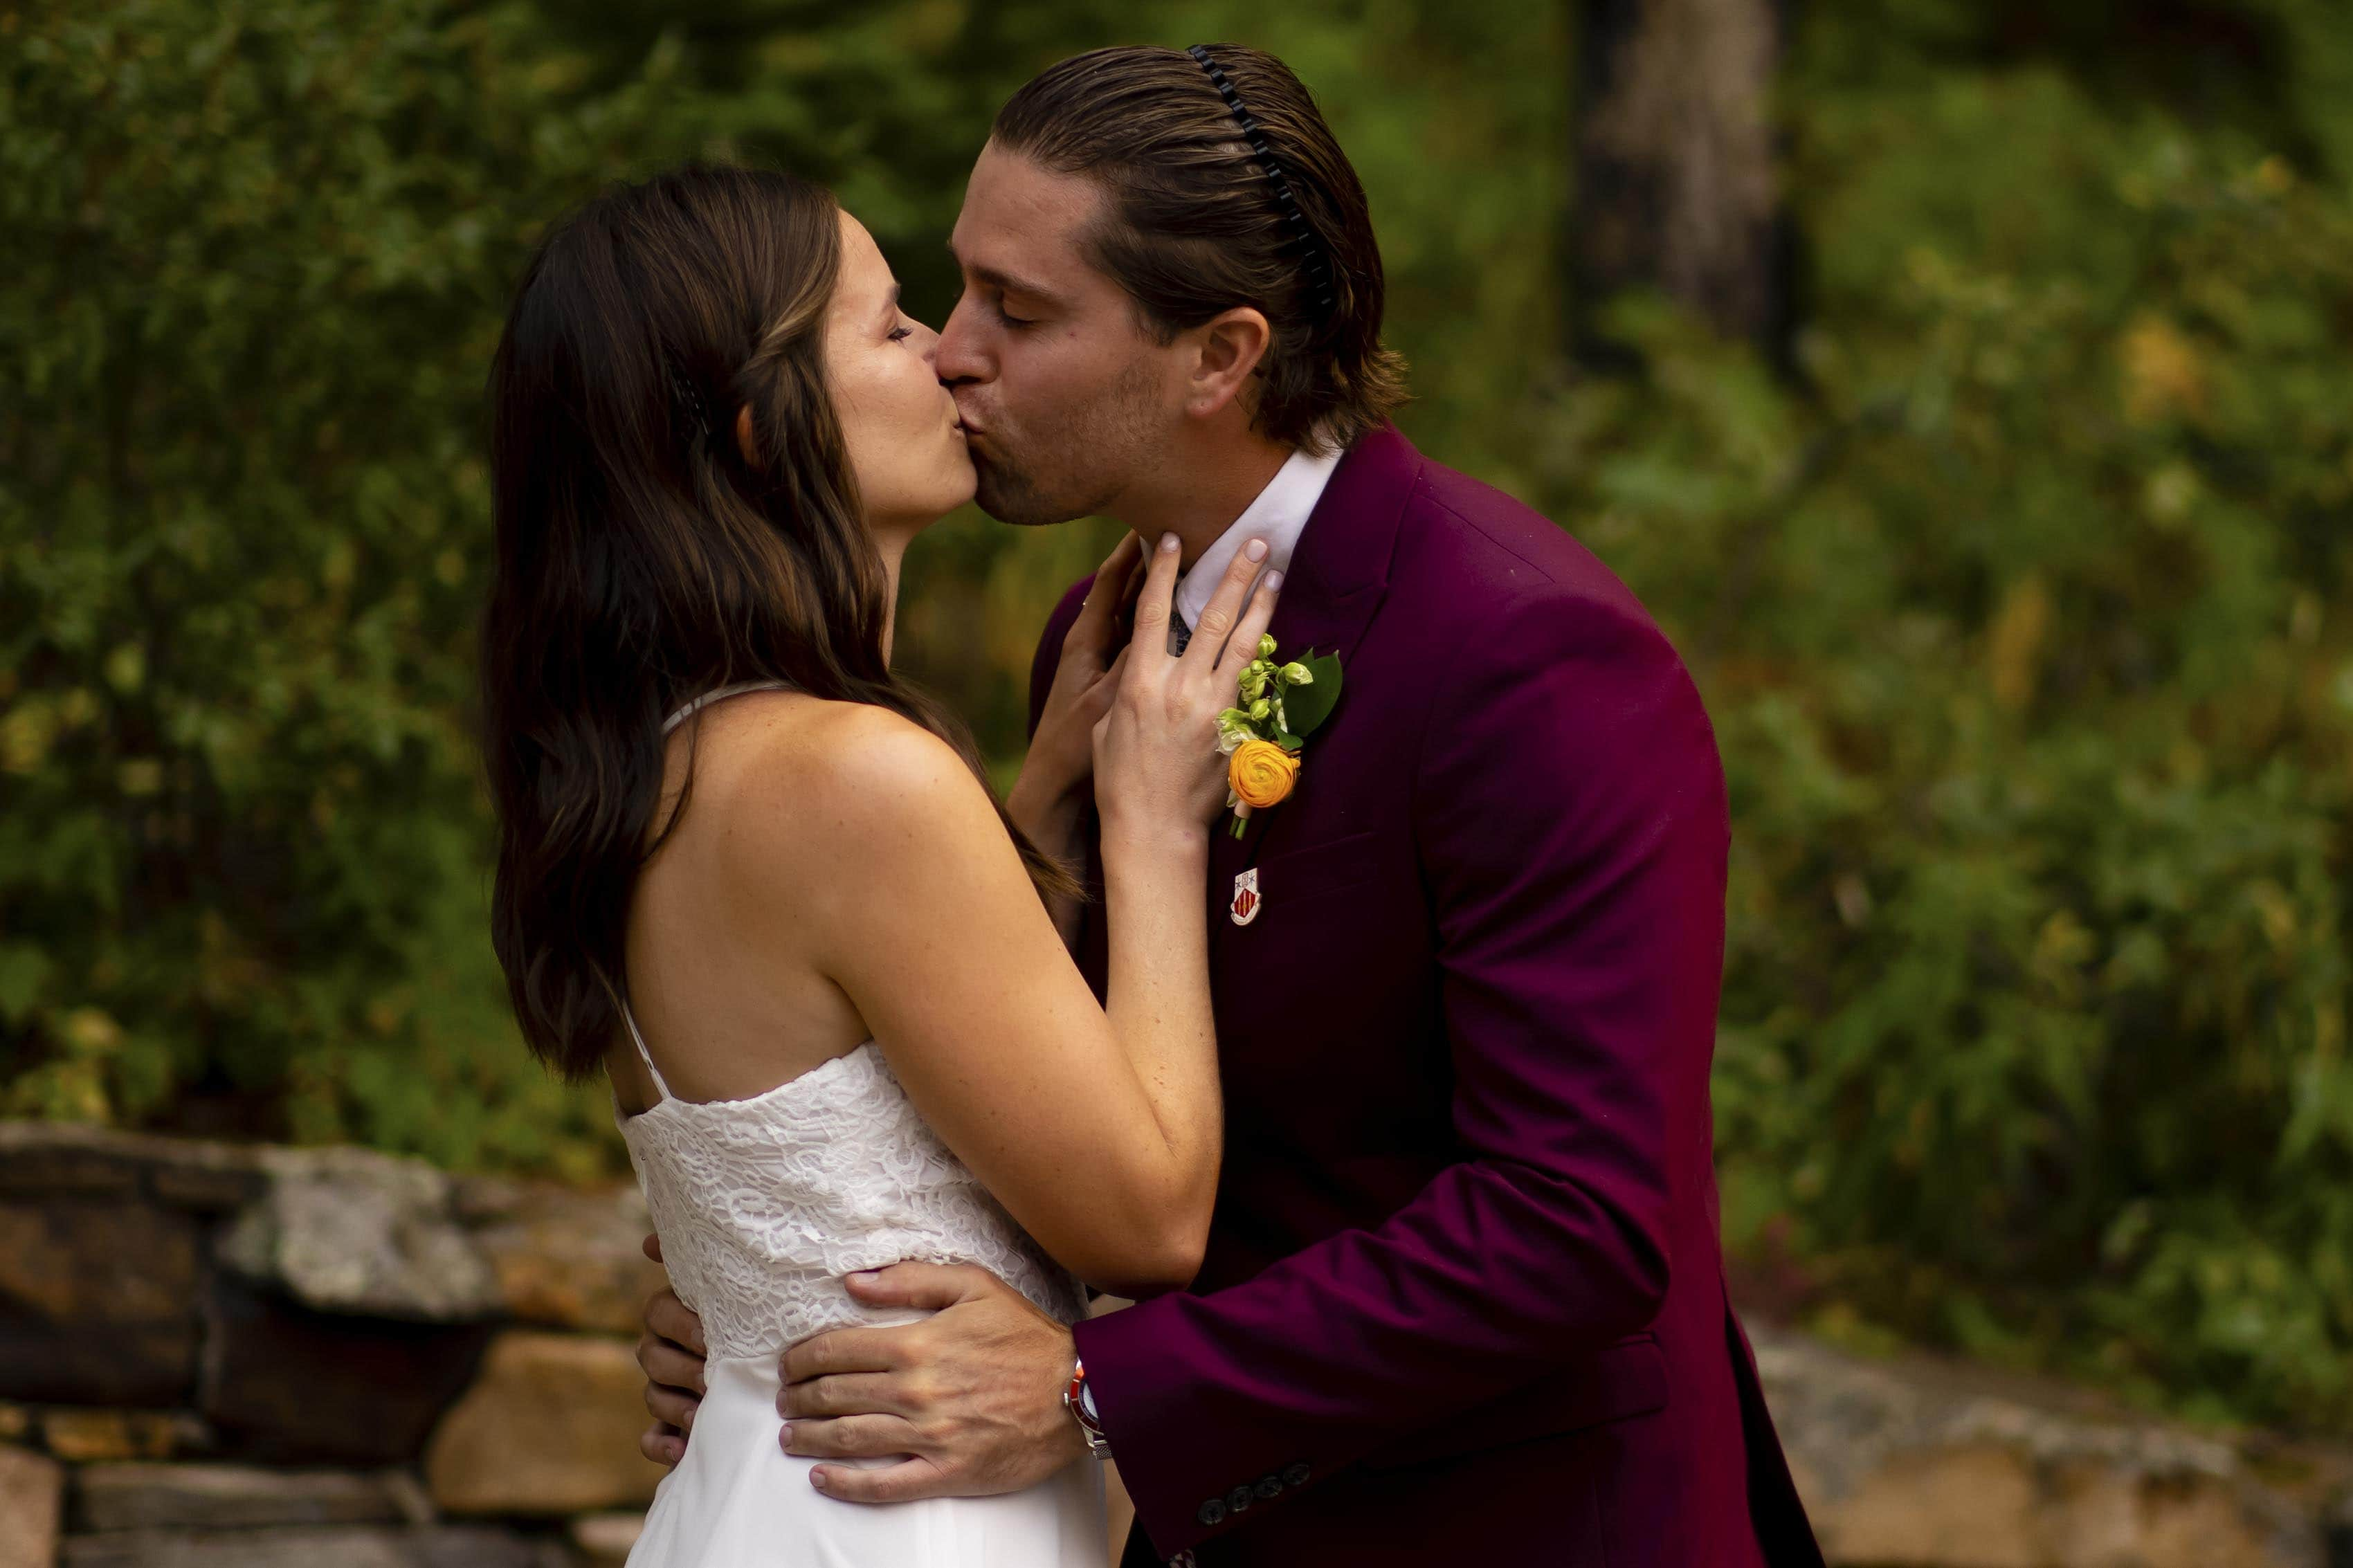 The couple share their first kiss as newlyweds